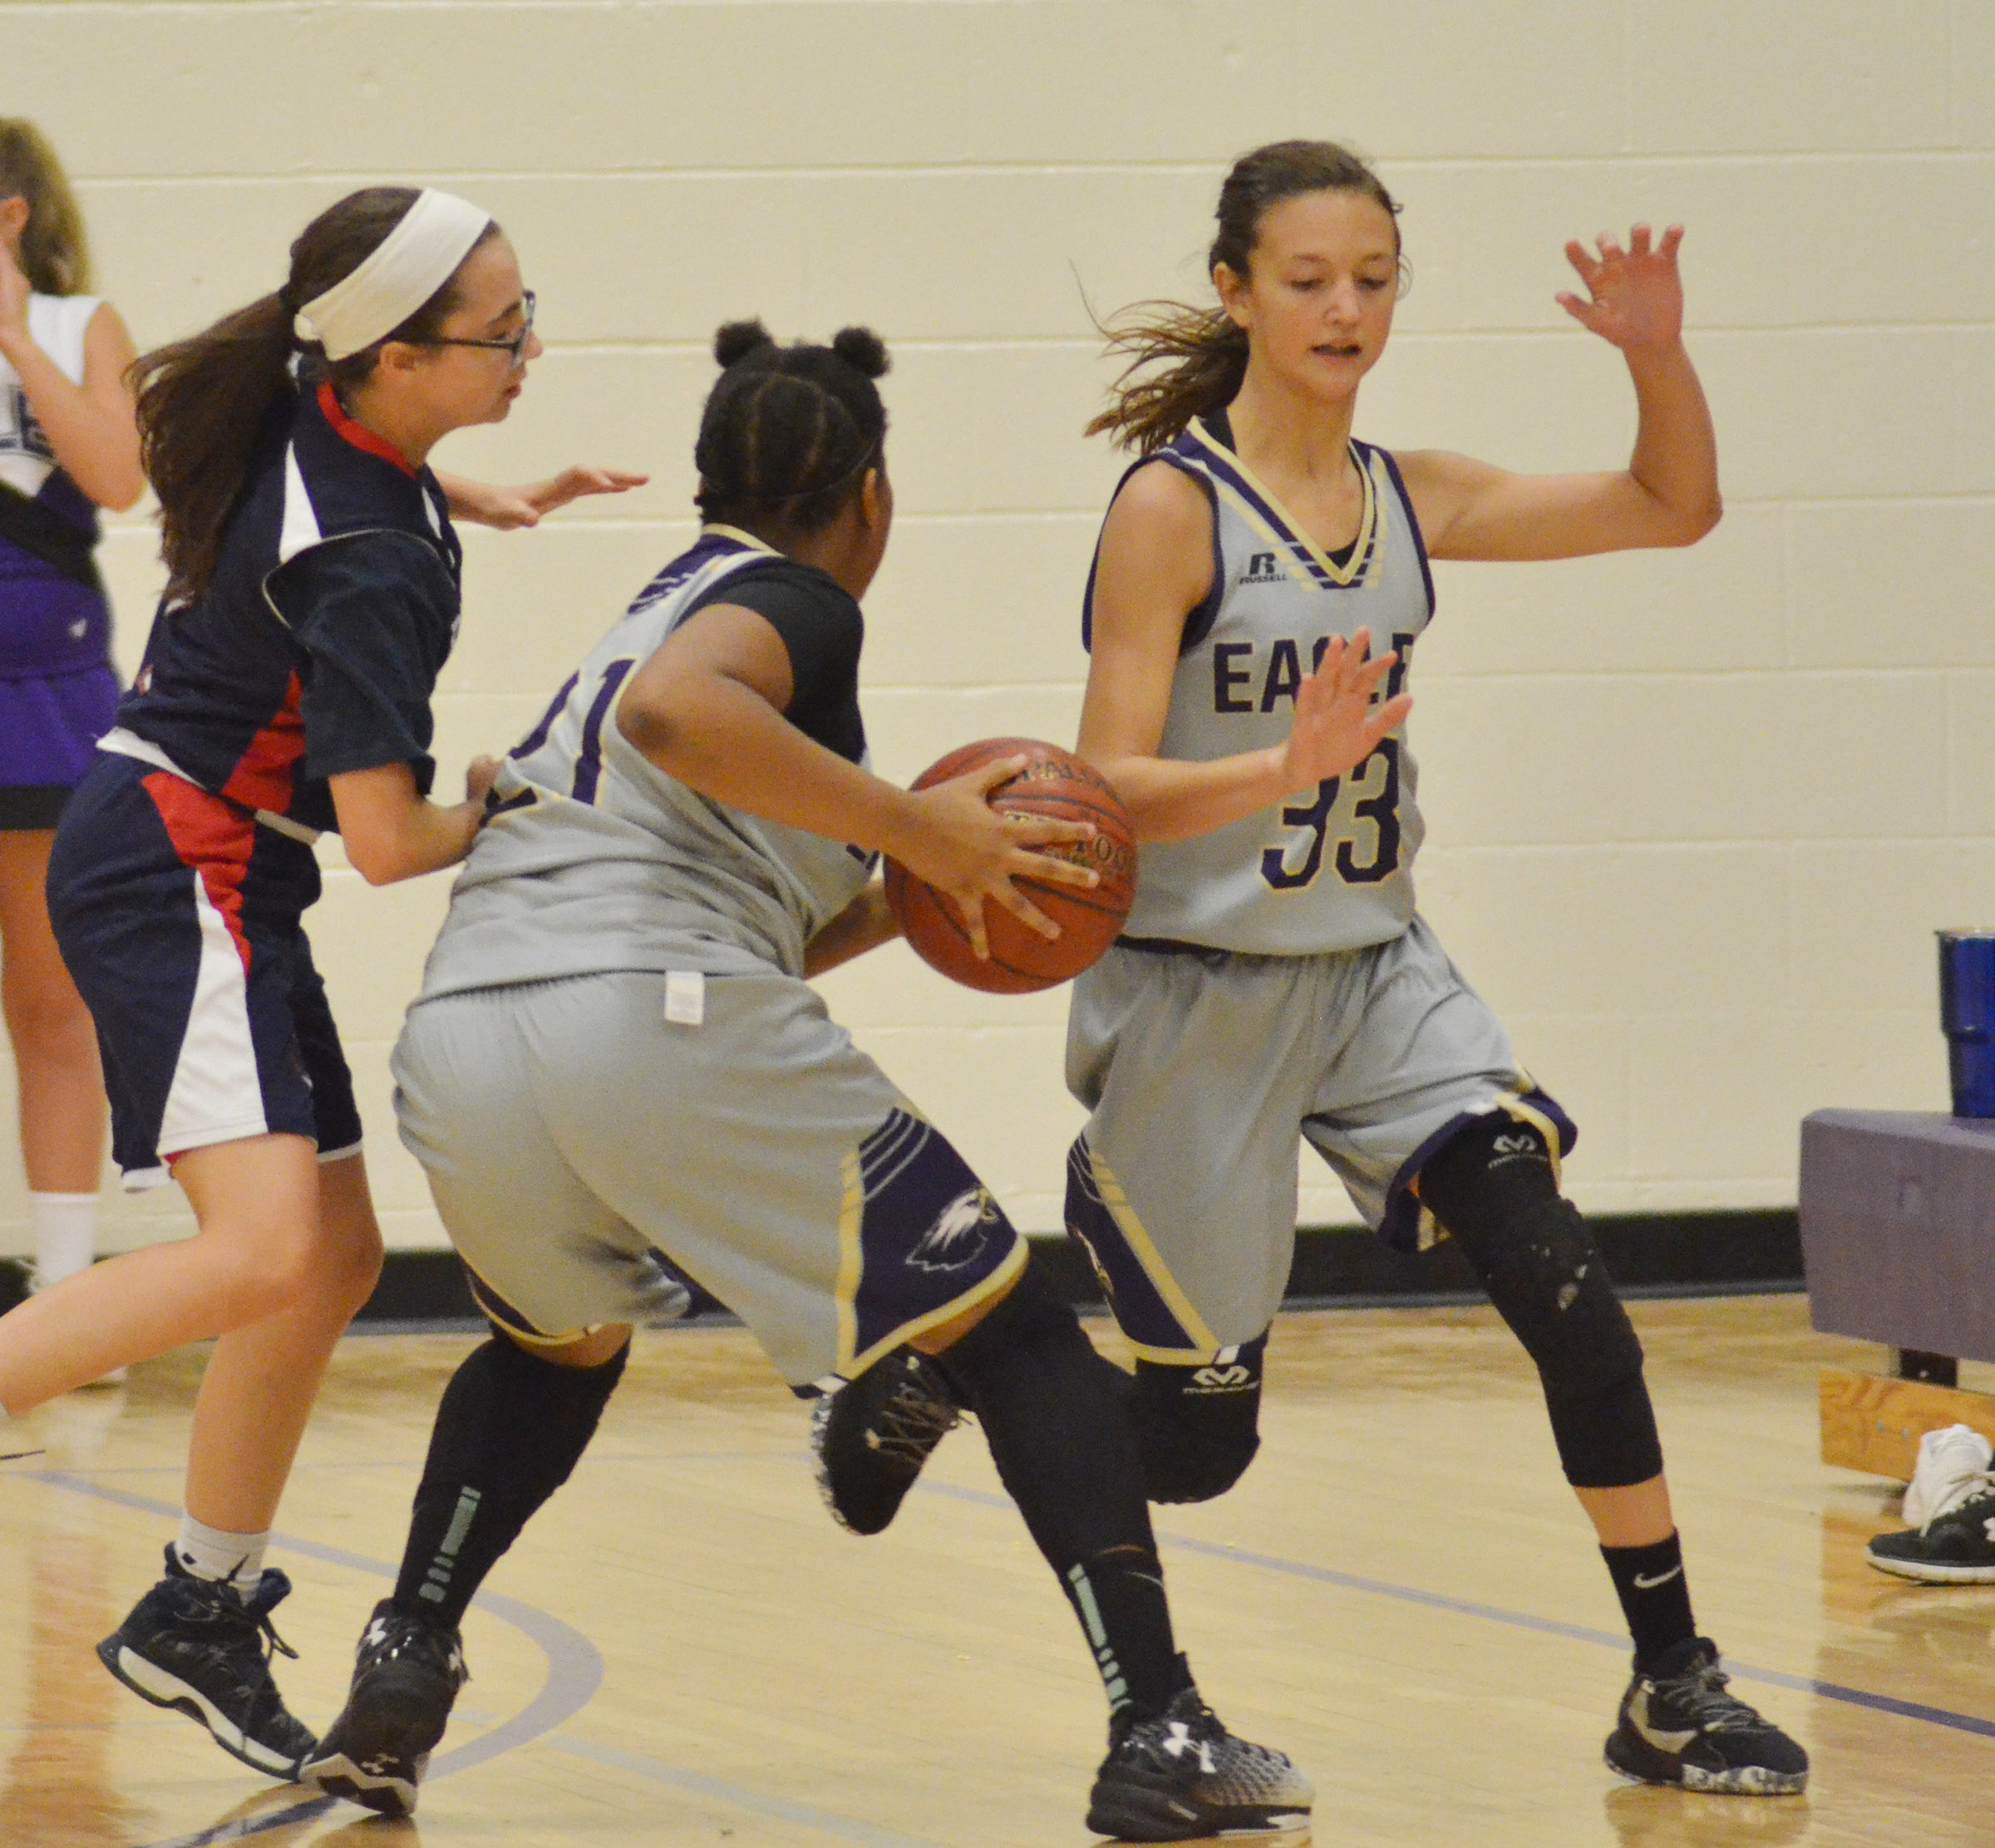 CMS seventh-grader Antaya Epps dribbles to the basket as classmates Bri Hayes plays defense.